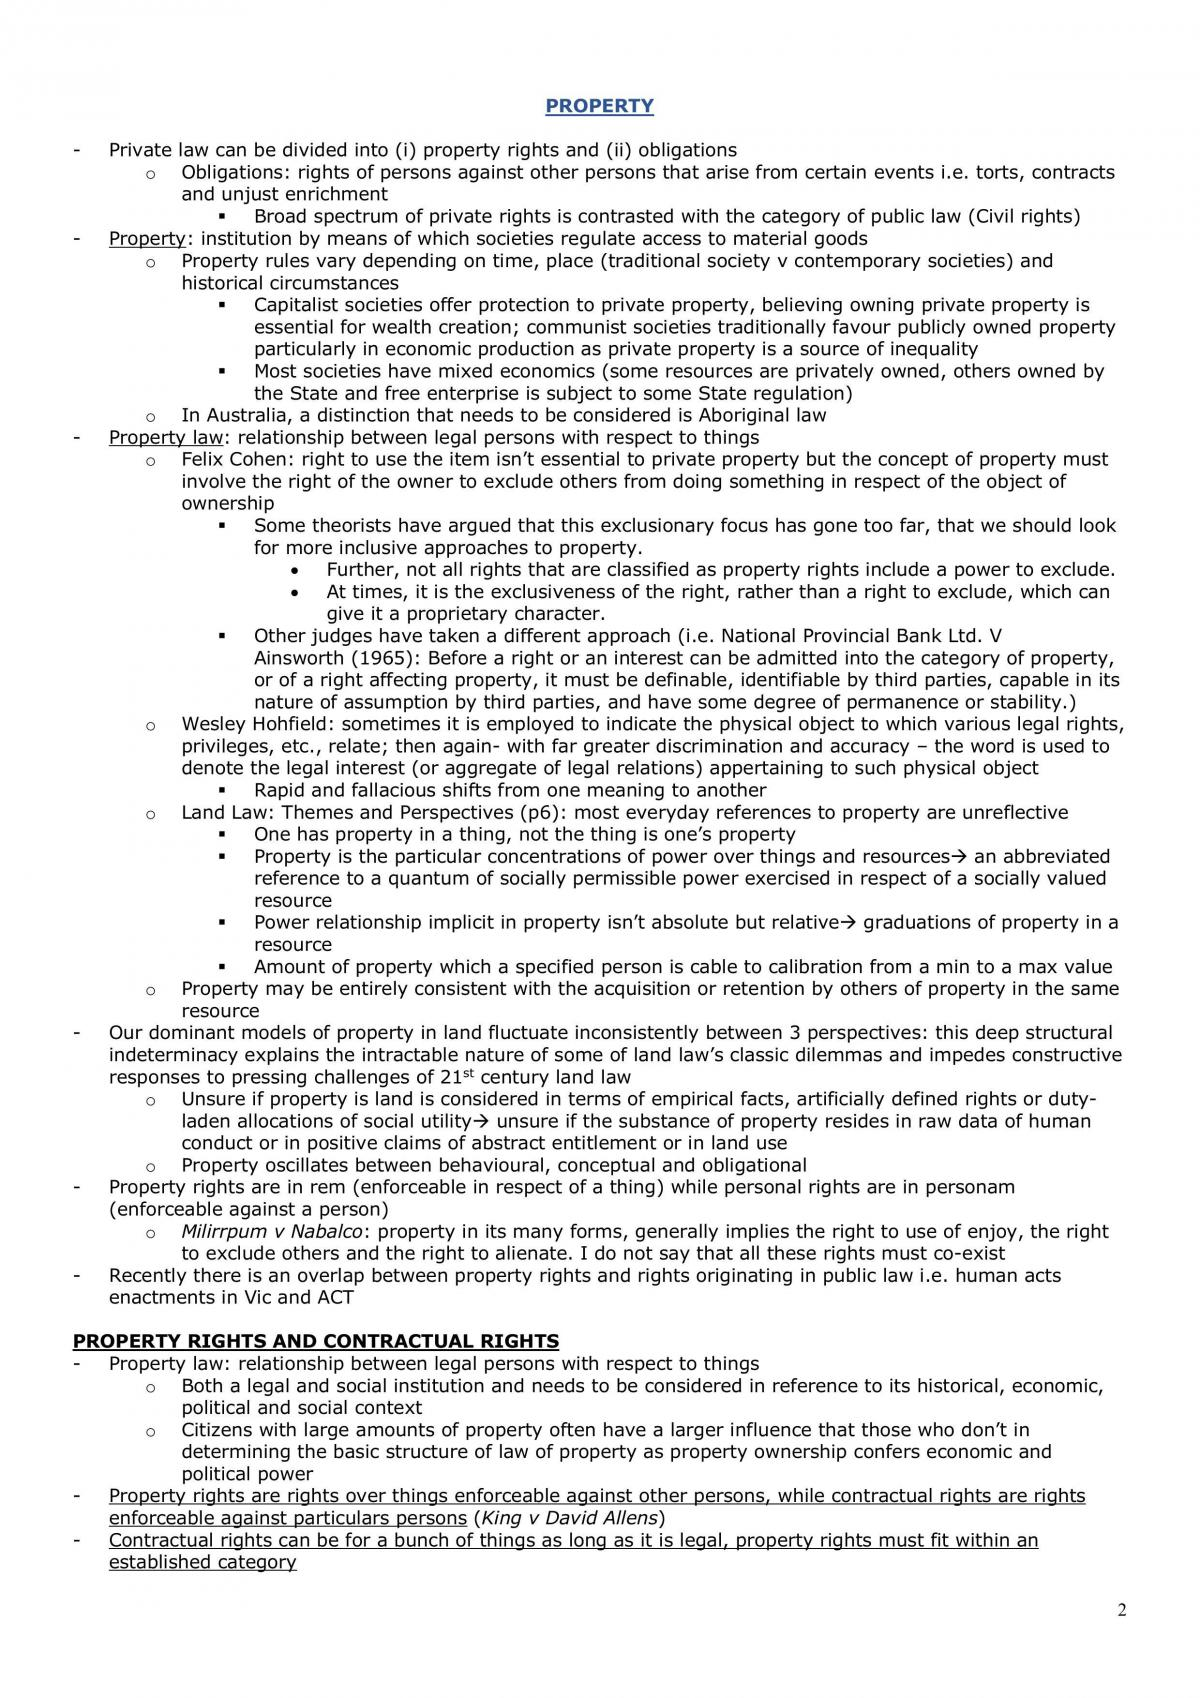 LAWS1150 Property Study Notes - Page 2